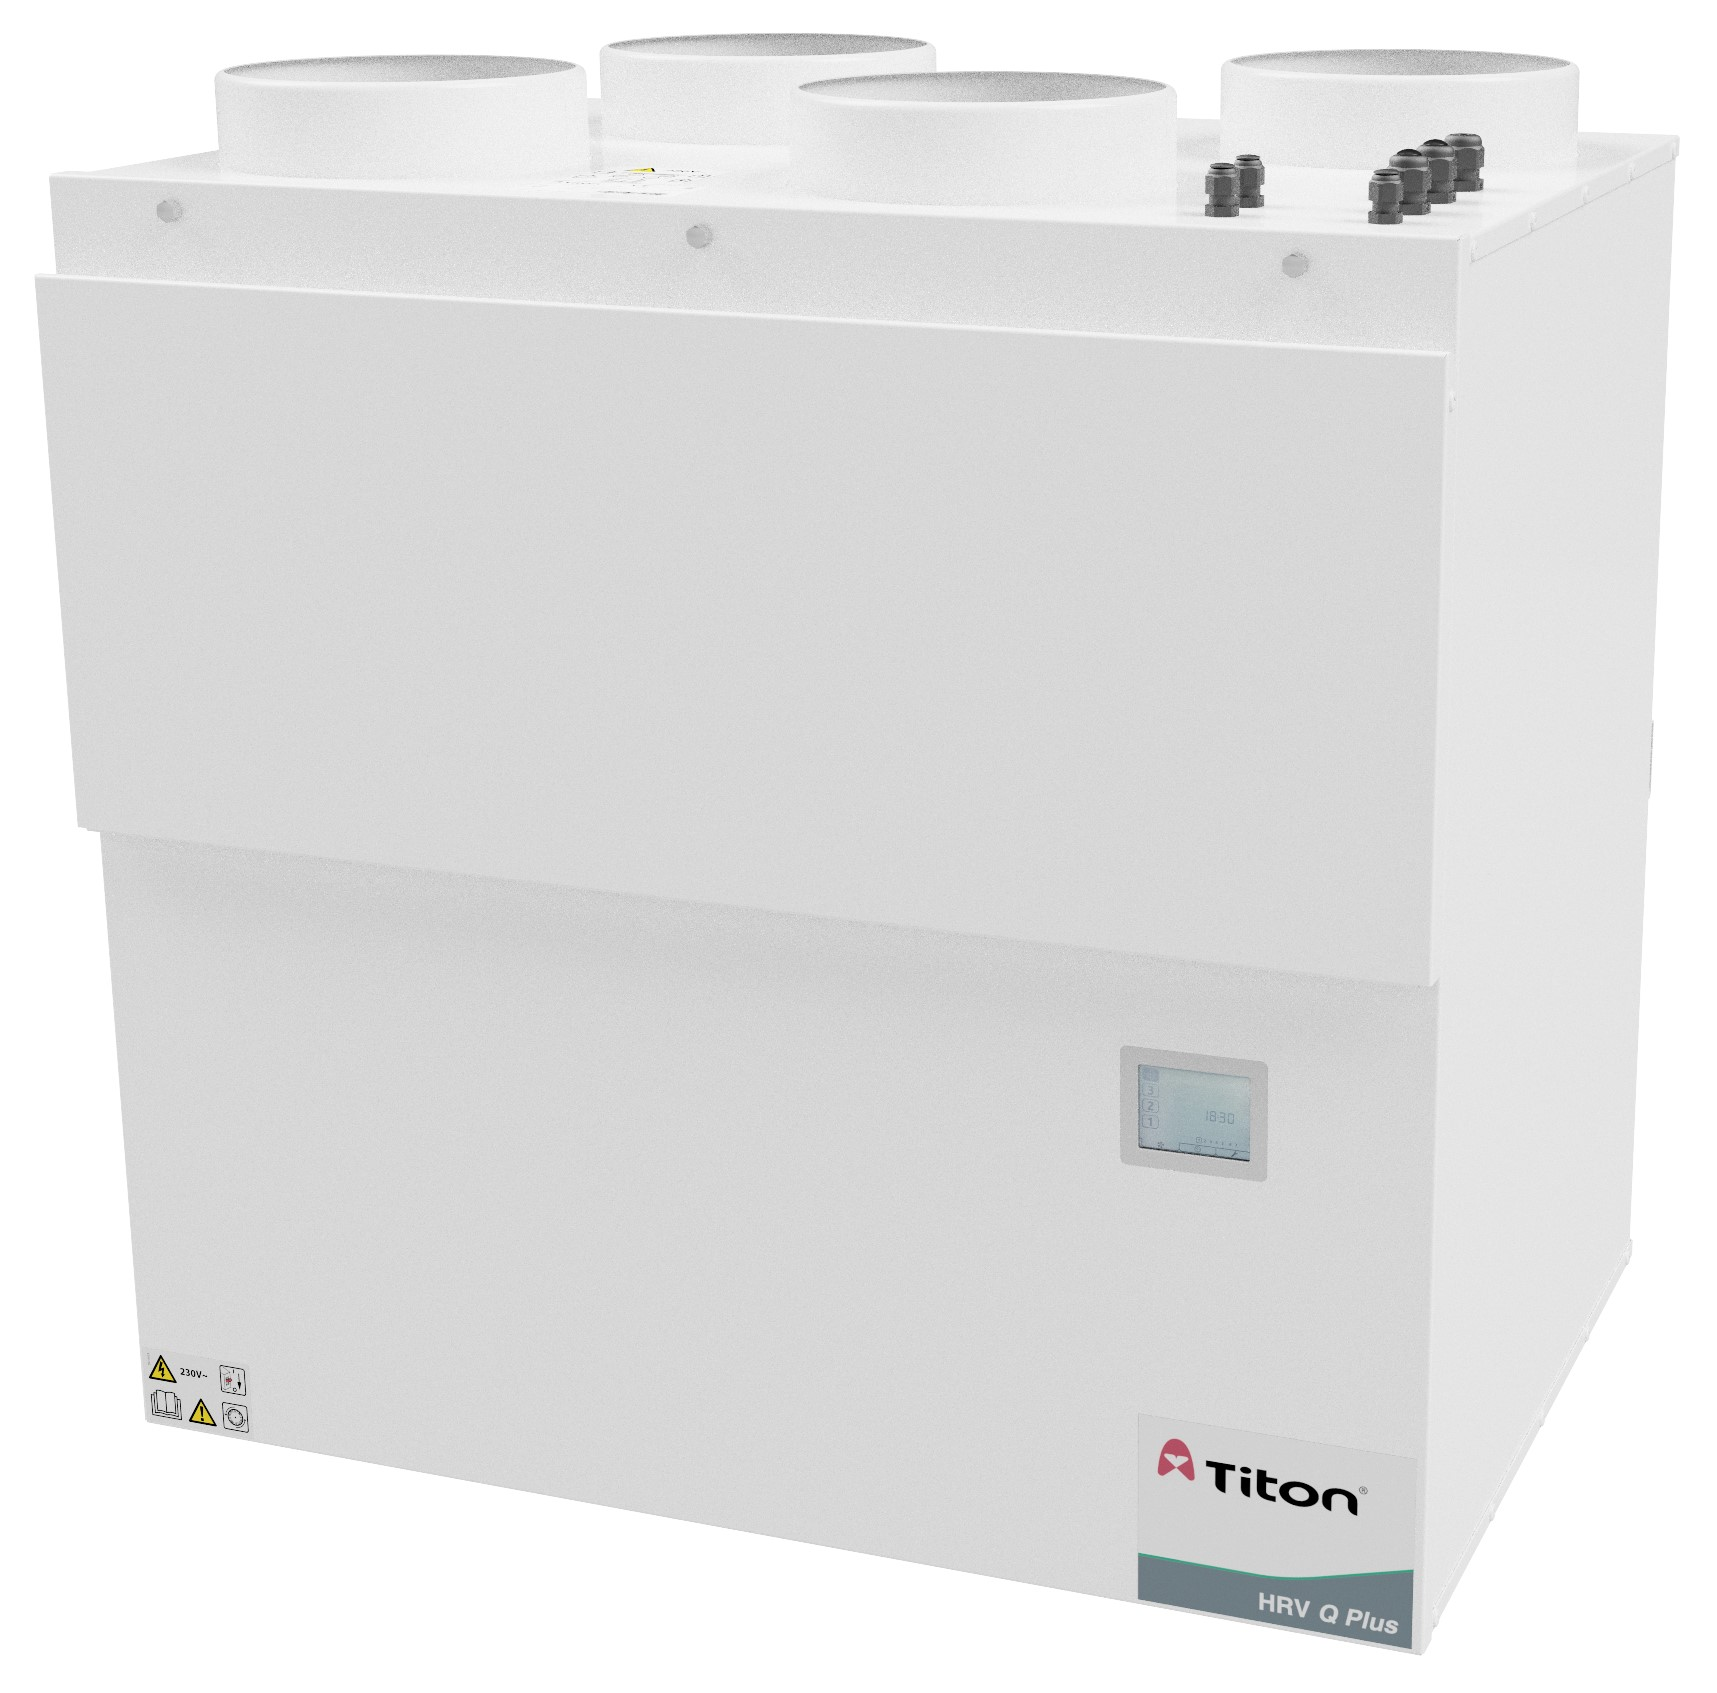 Titon launches its most powerful MVHR unit